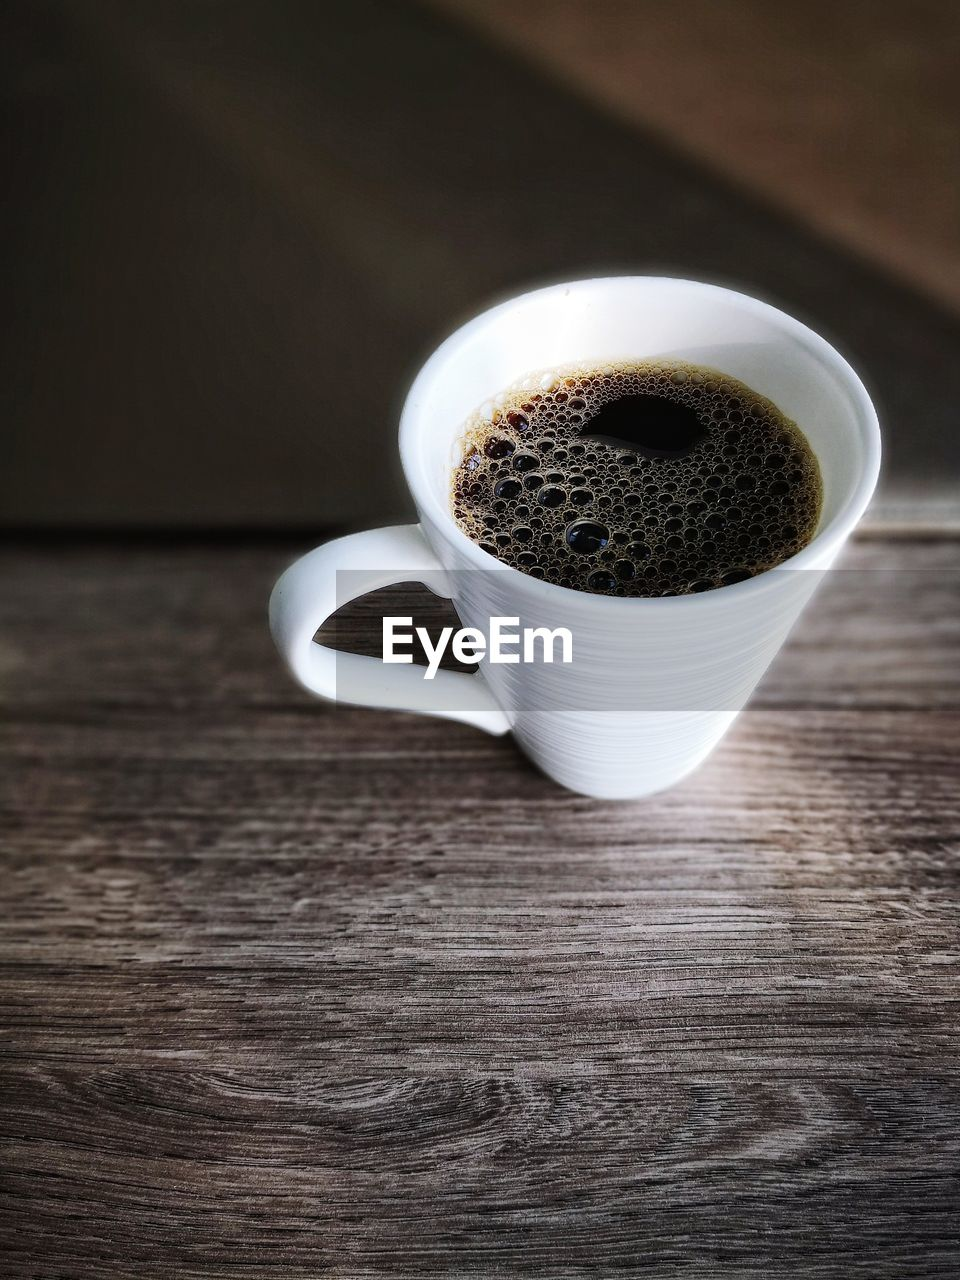 food and drink, table, mug, cup, drink, refreshment, still life, coffee, coffee cup, freshness, coffee - drink, indoors, wood - material, no people, high angle view, food, close-up, focus on foreground, frothy drink, hot drink, non-alcoholic beverage, caffeine, crockery